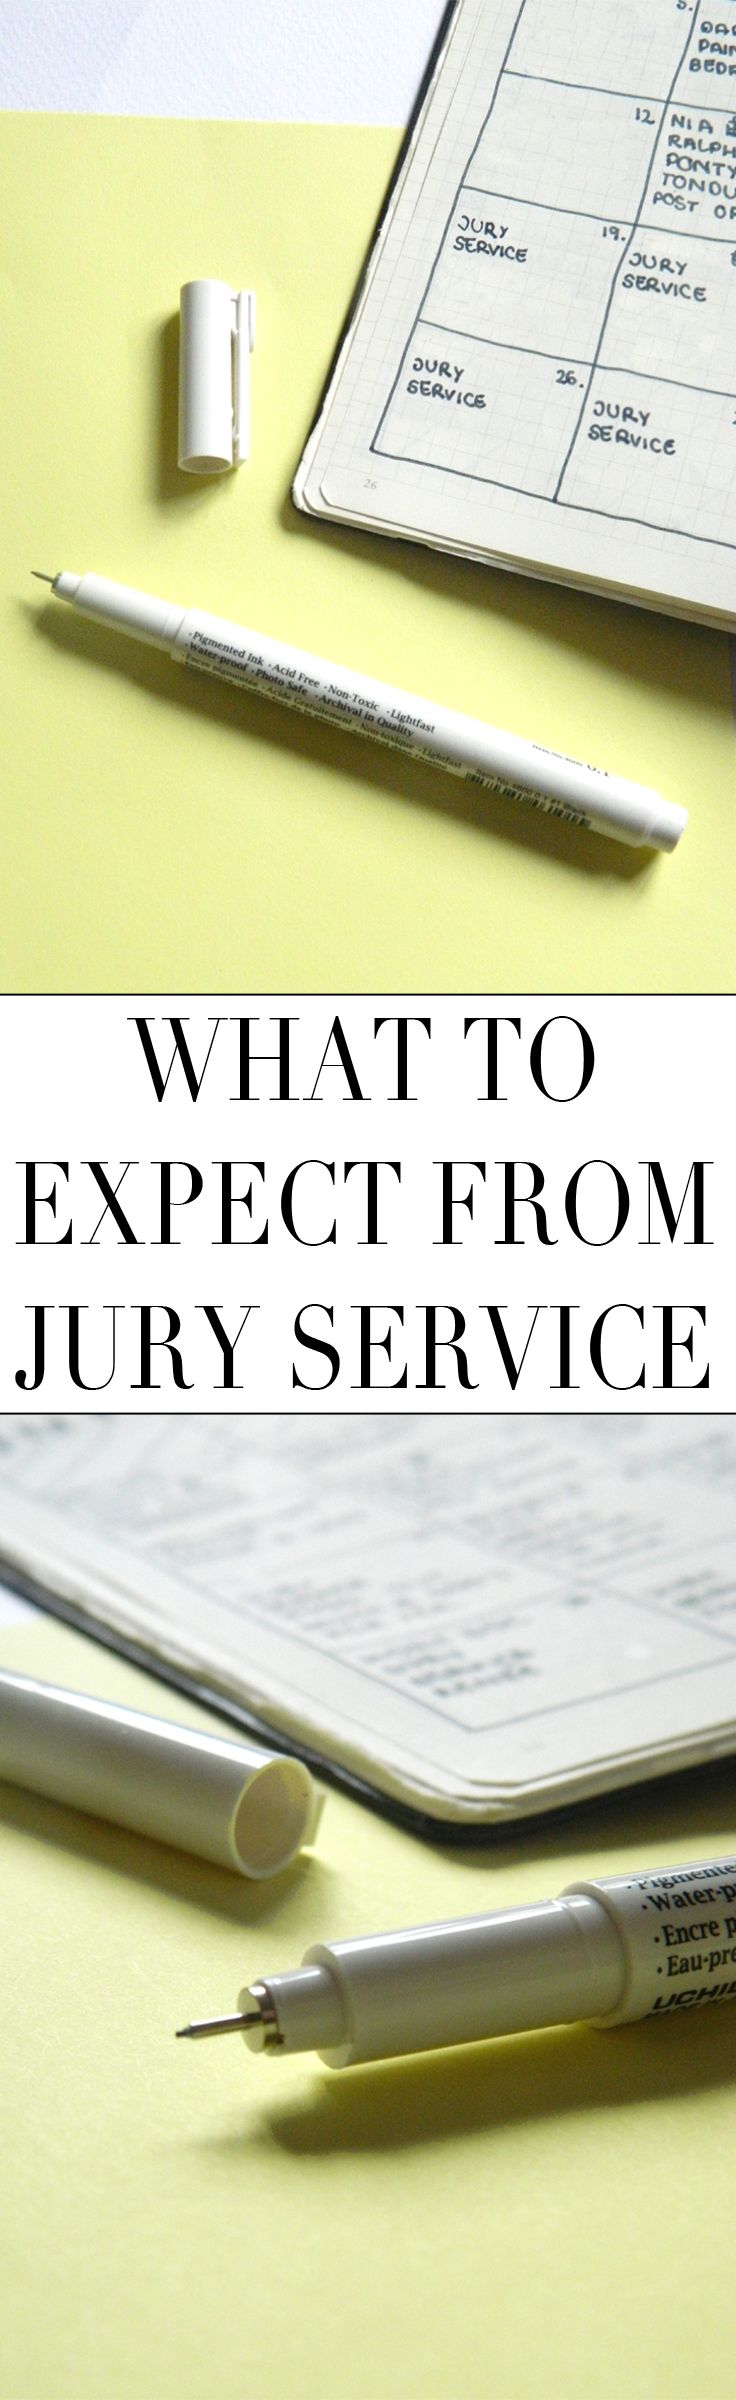 What To Expect From Jury Service // Twenty Something Meltdown